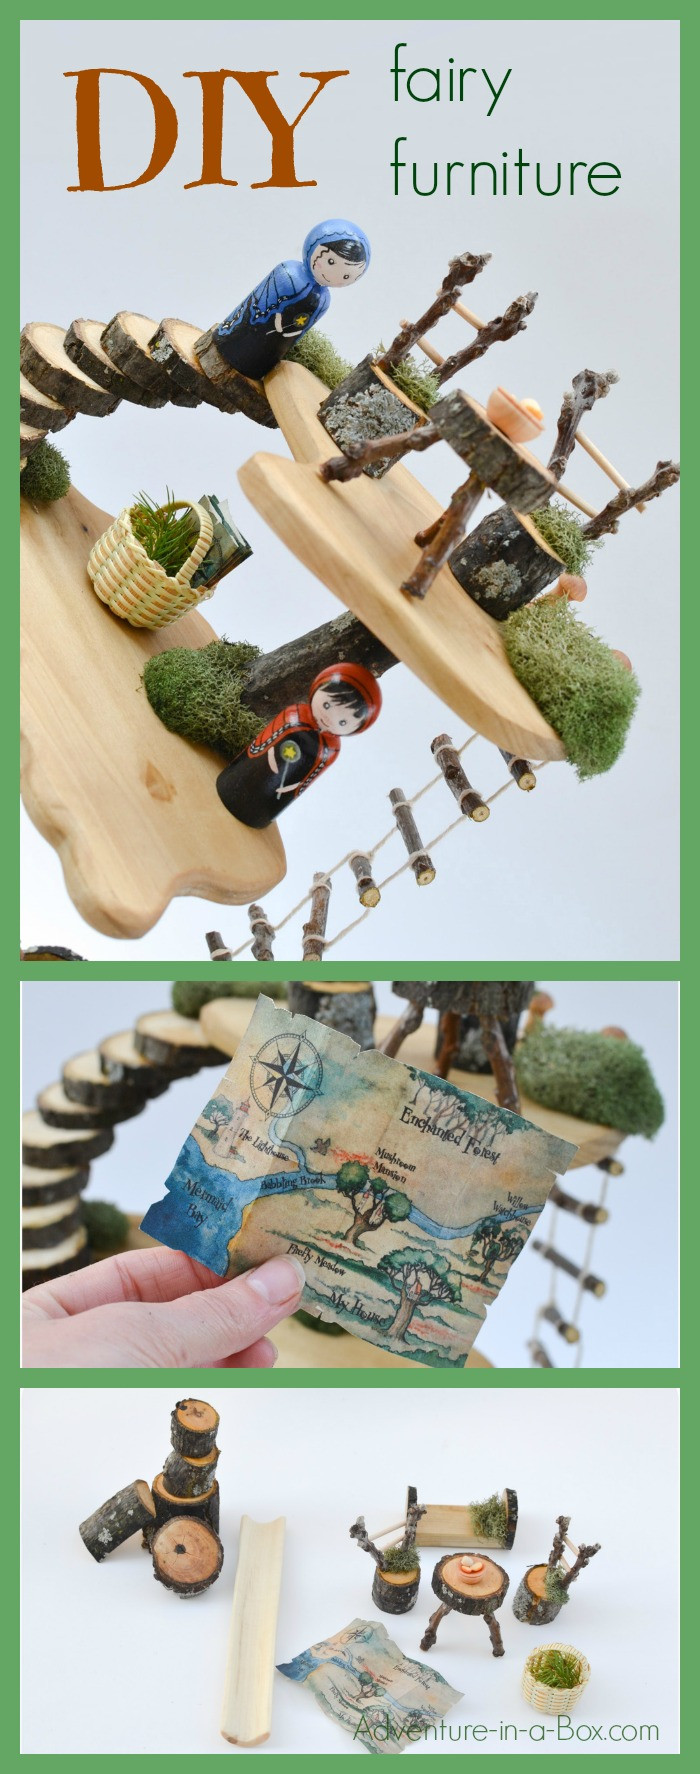 Best ideas about Fairy Furniture DIY . Save or Pin DIY Project How to Make Fairy Furniture Now.